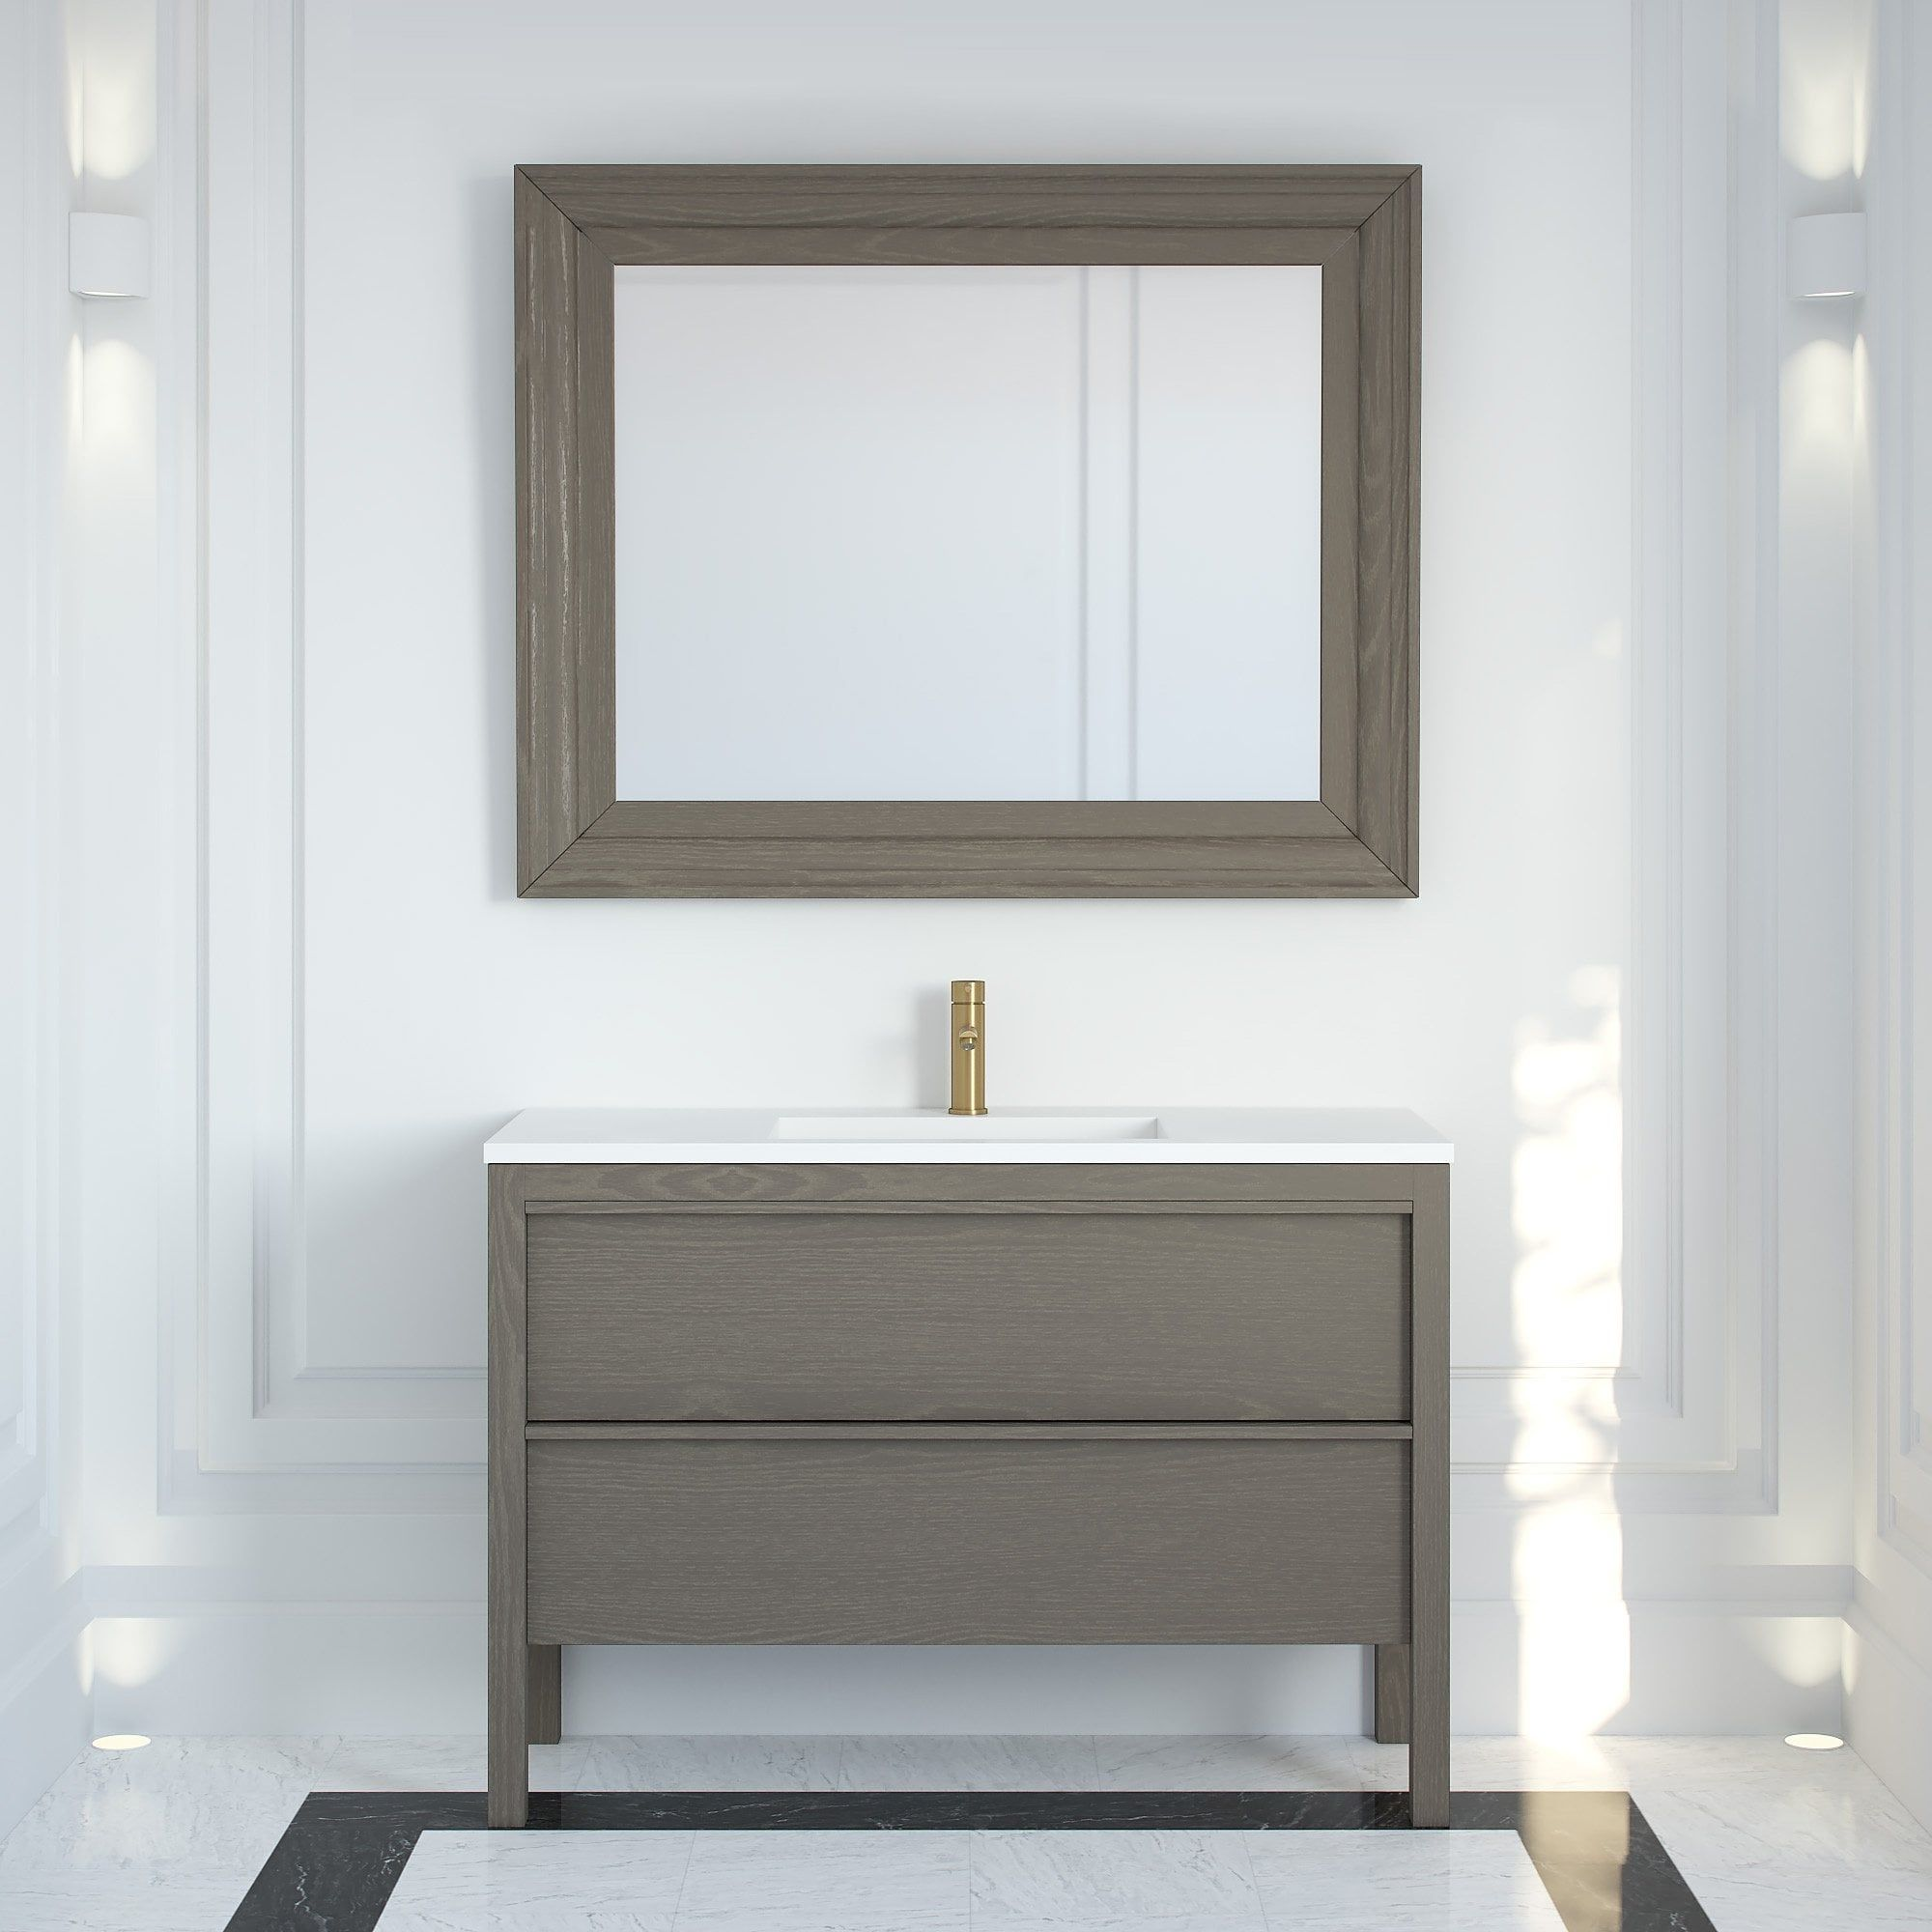 Langham Mirror Grey Oak 1200 In 2020 Bathroom Freestanding Freestanding Vanity Unit Vanity Units